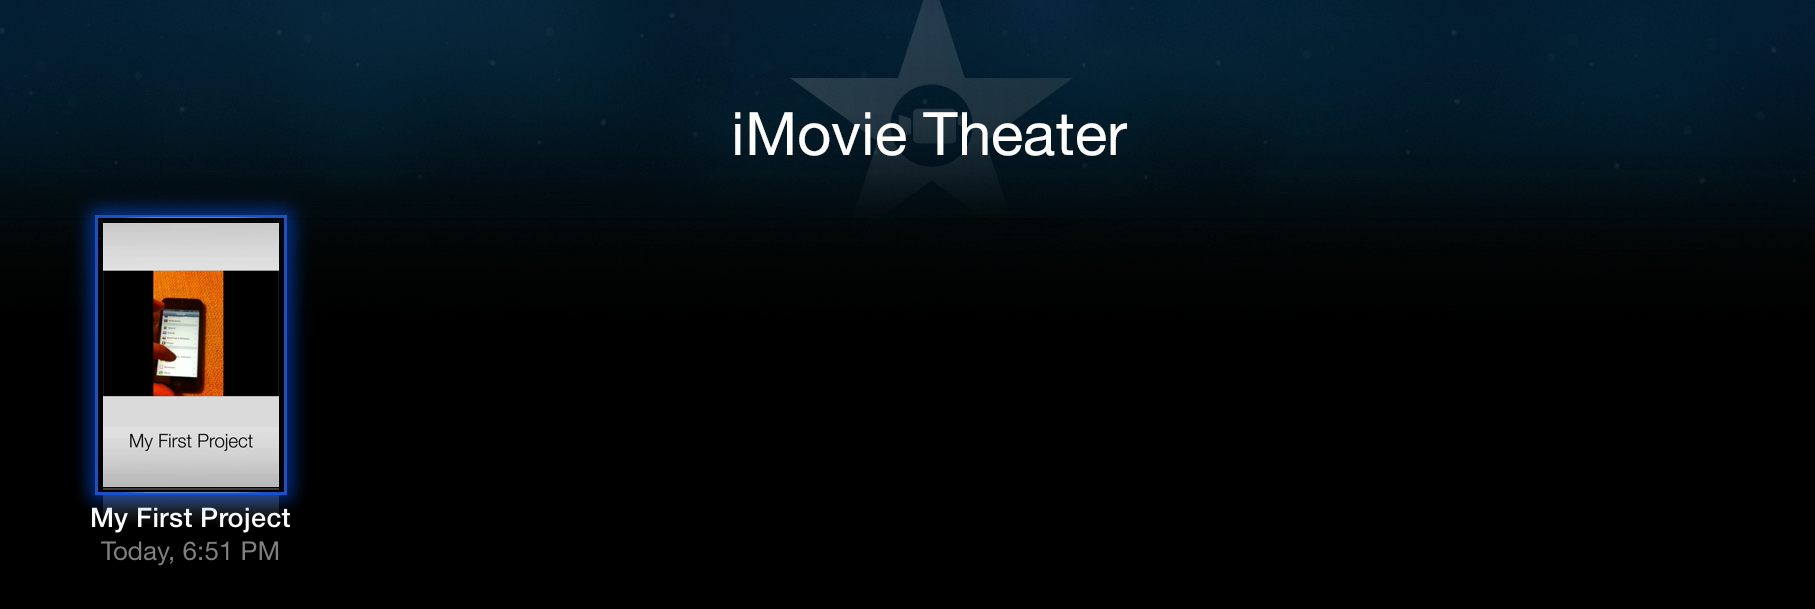 Figure 12: To view what you've uploaded to iMovie Theater, simply open the app from the main menu.